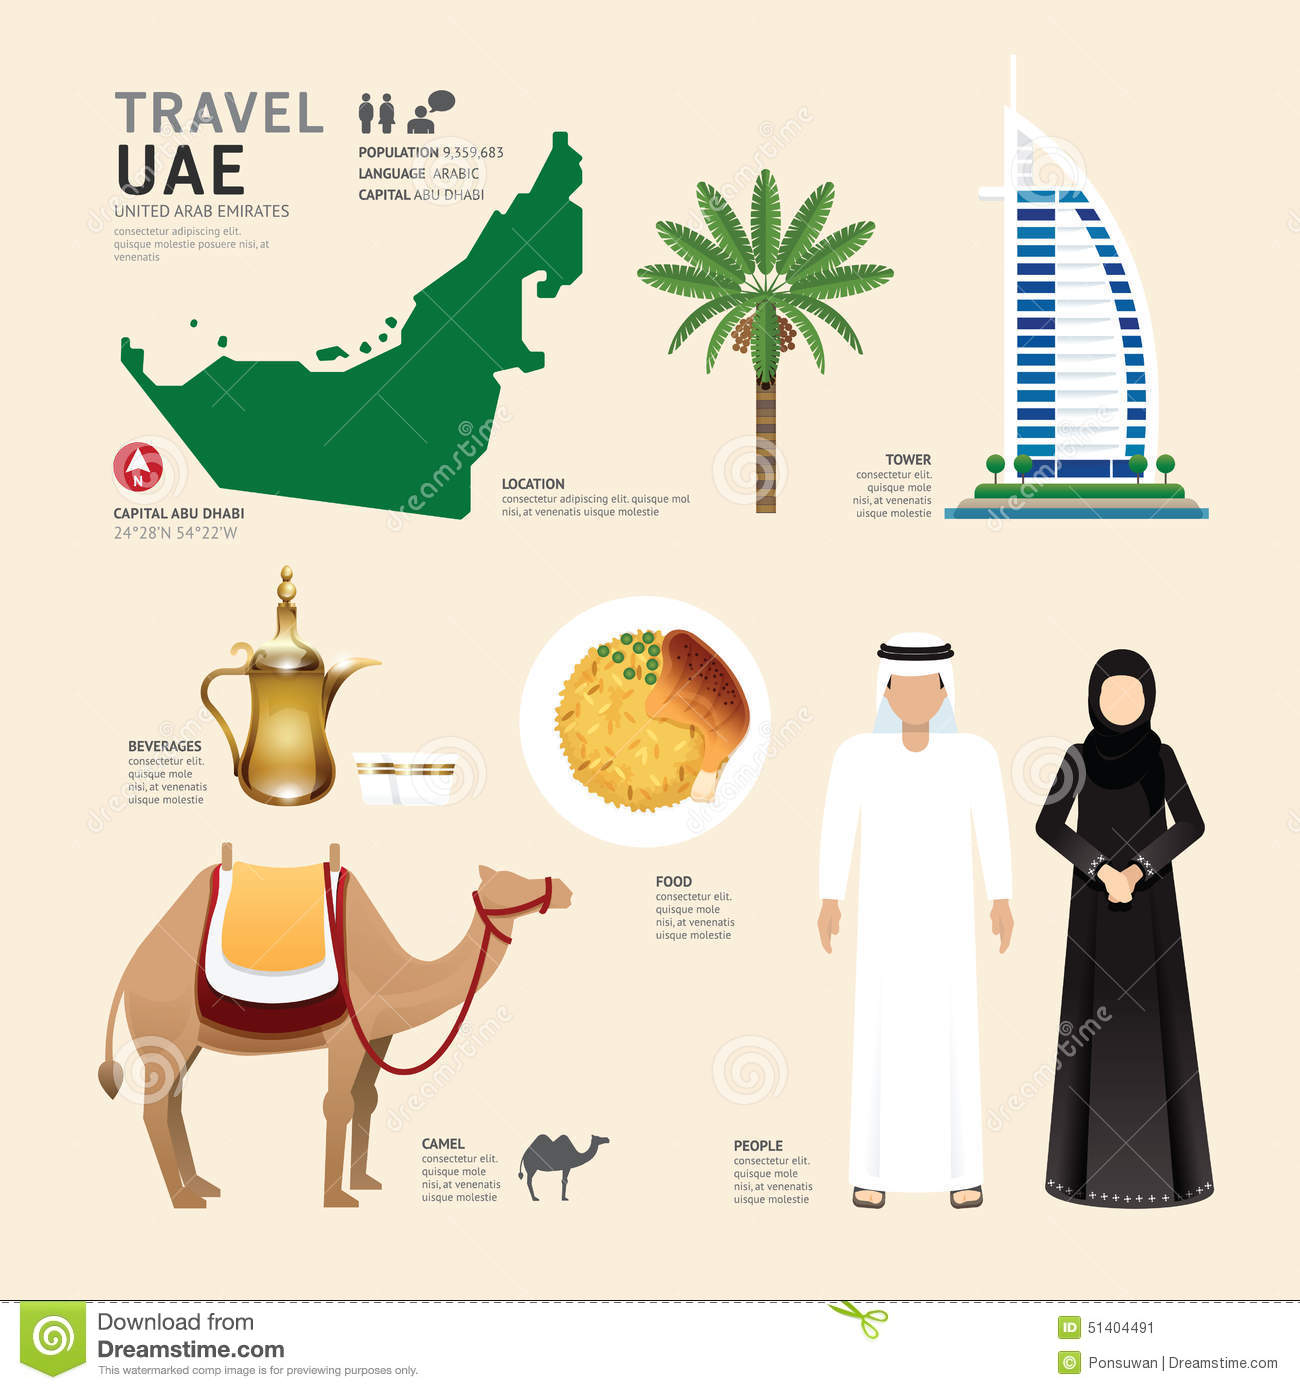 Uae Map With Emirates Only – Location of Uae in World Map